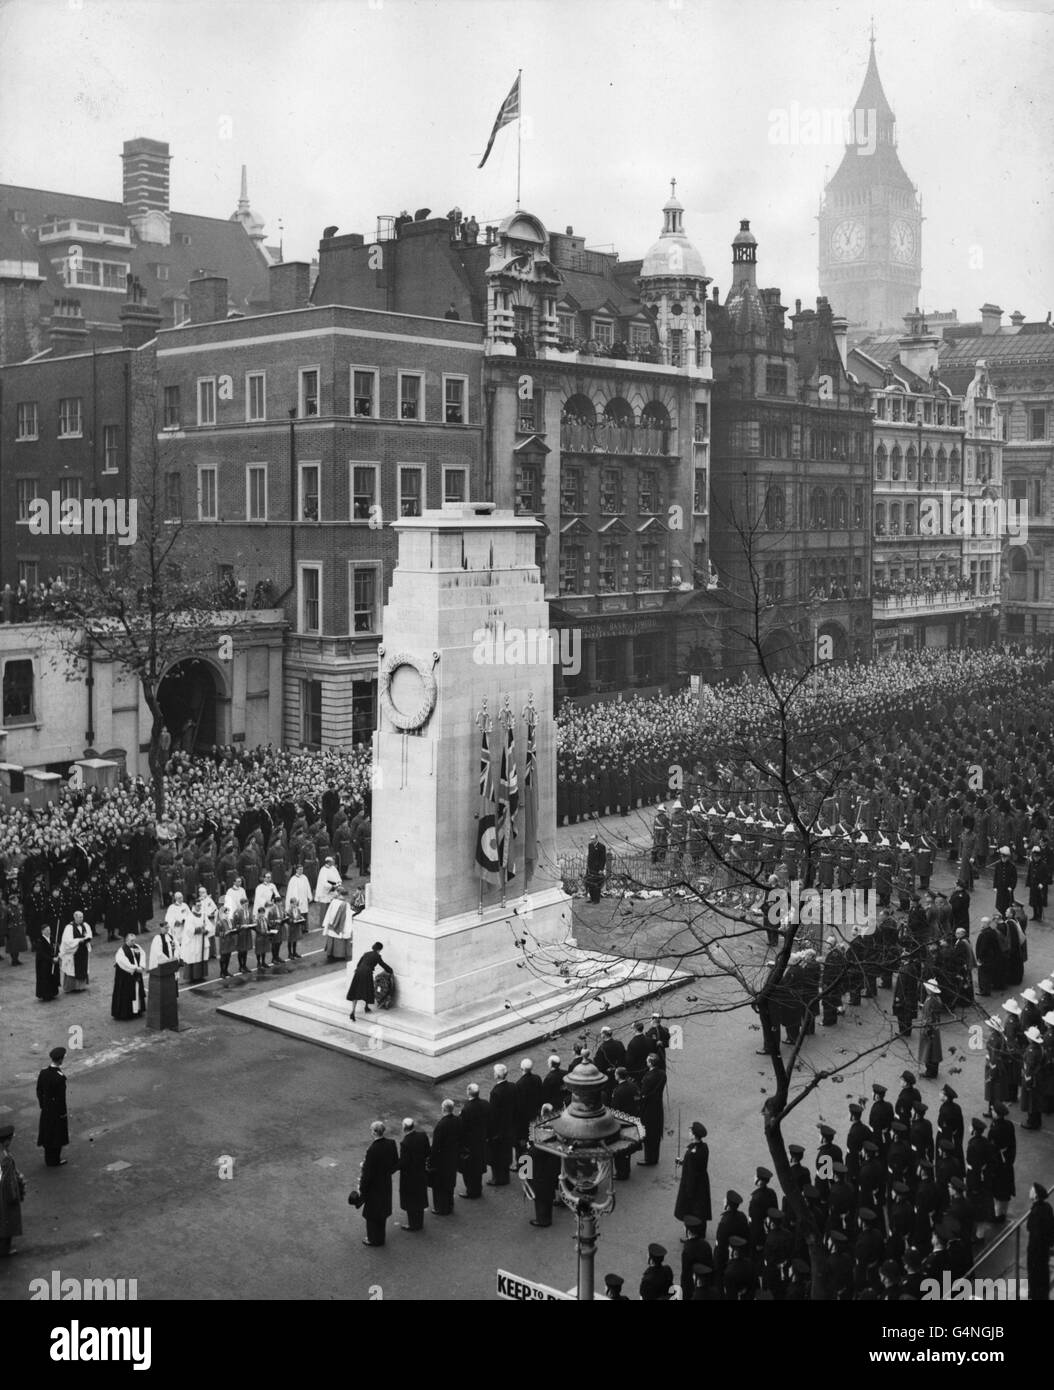 Royalty - Remembrance Sunday - Cenotaph - Whitehall, London - Stock Image